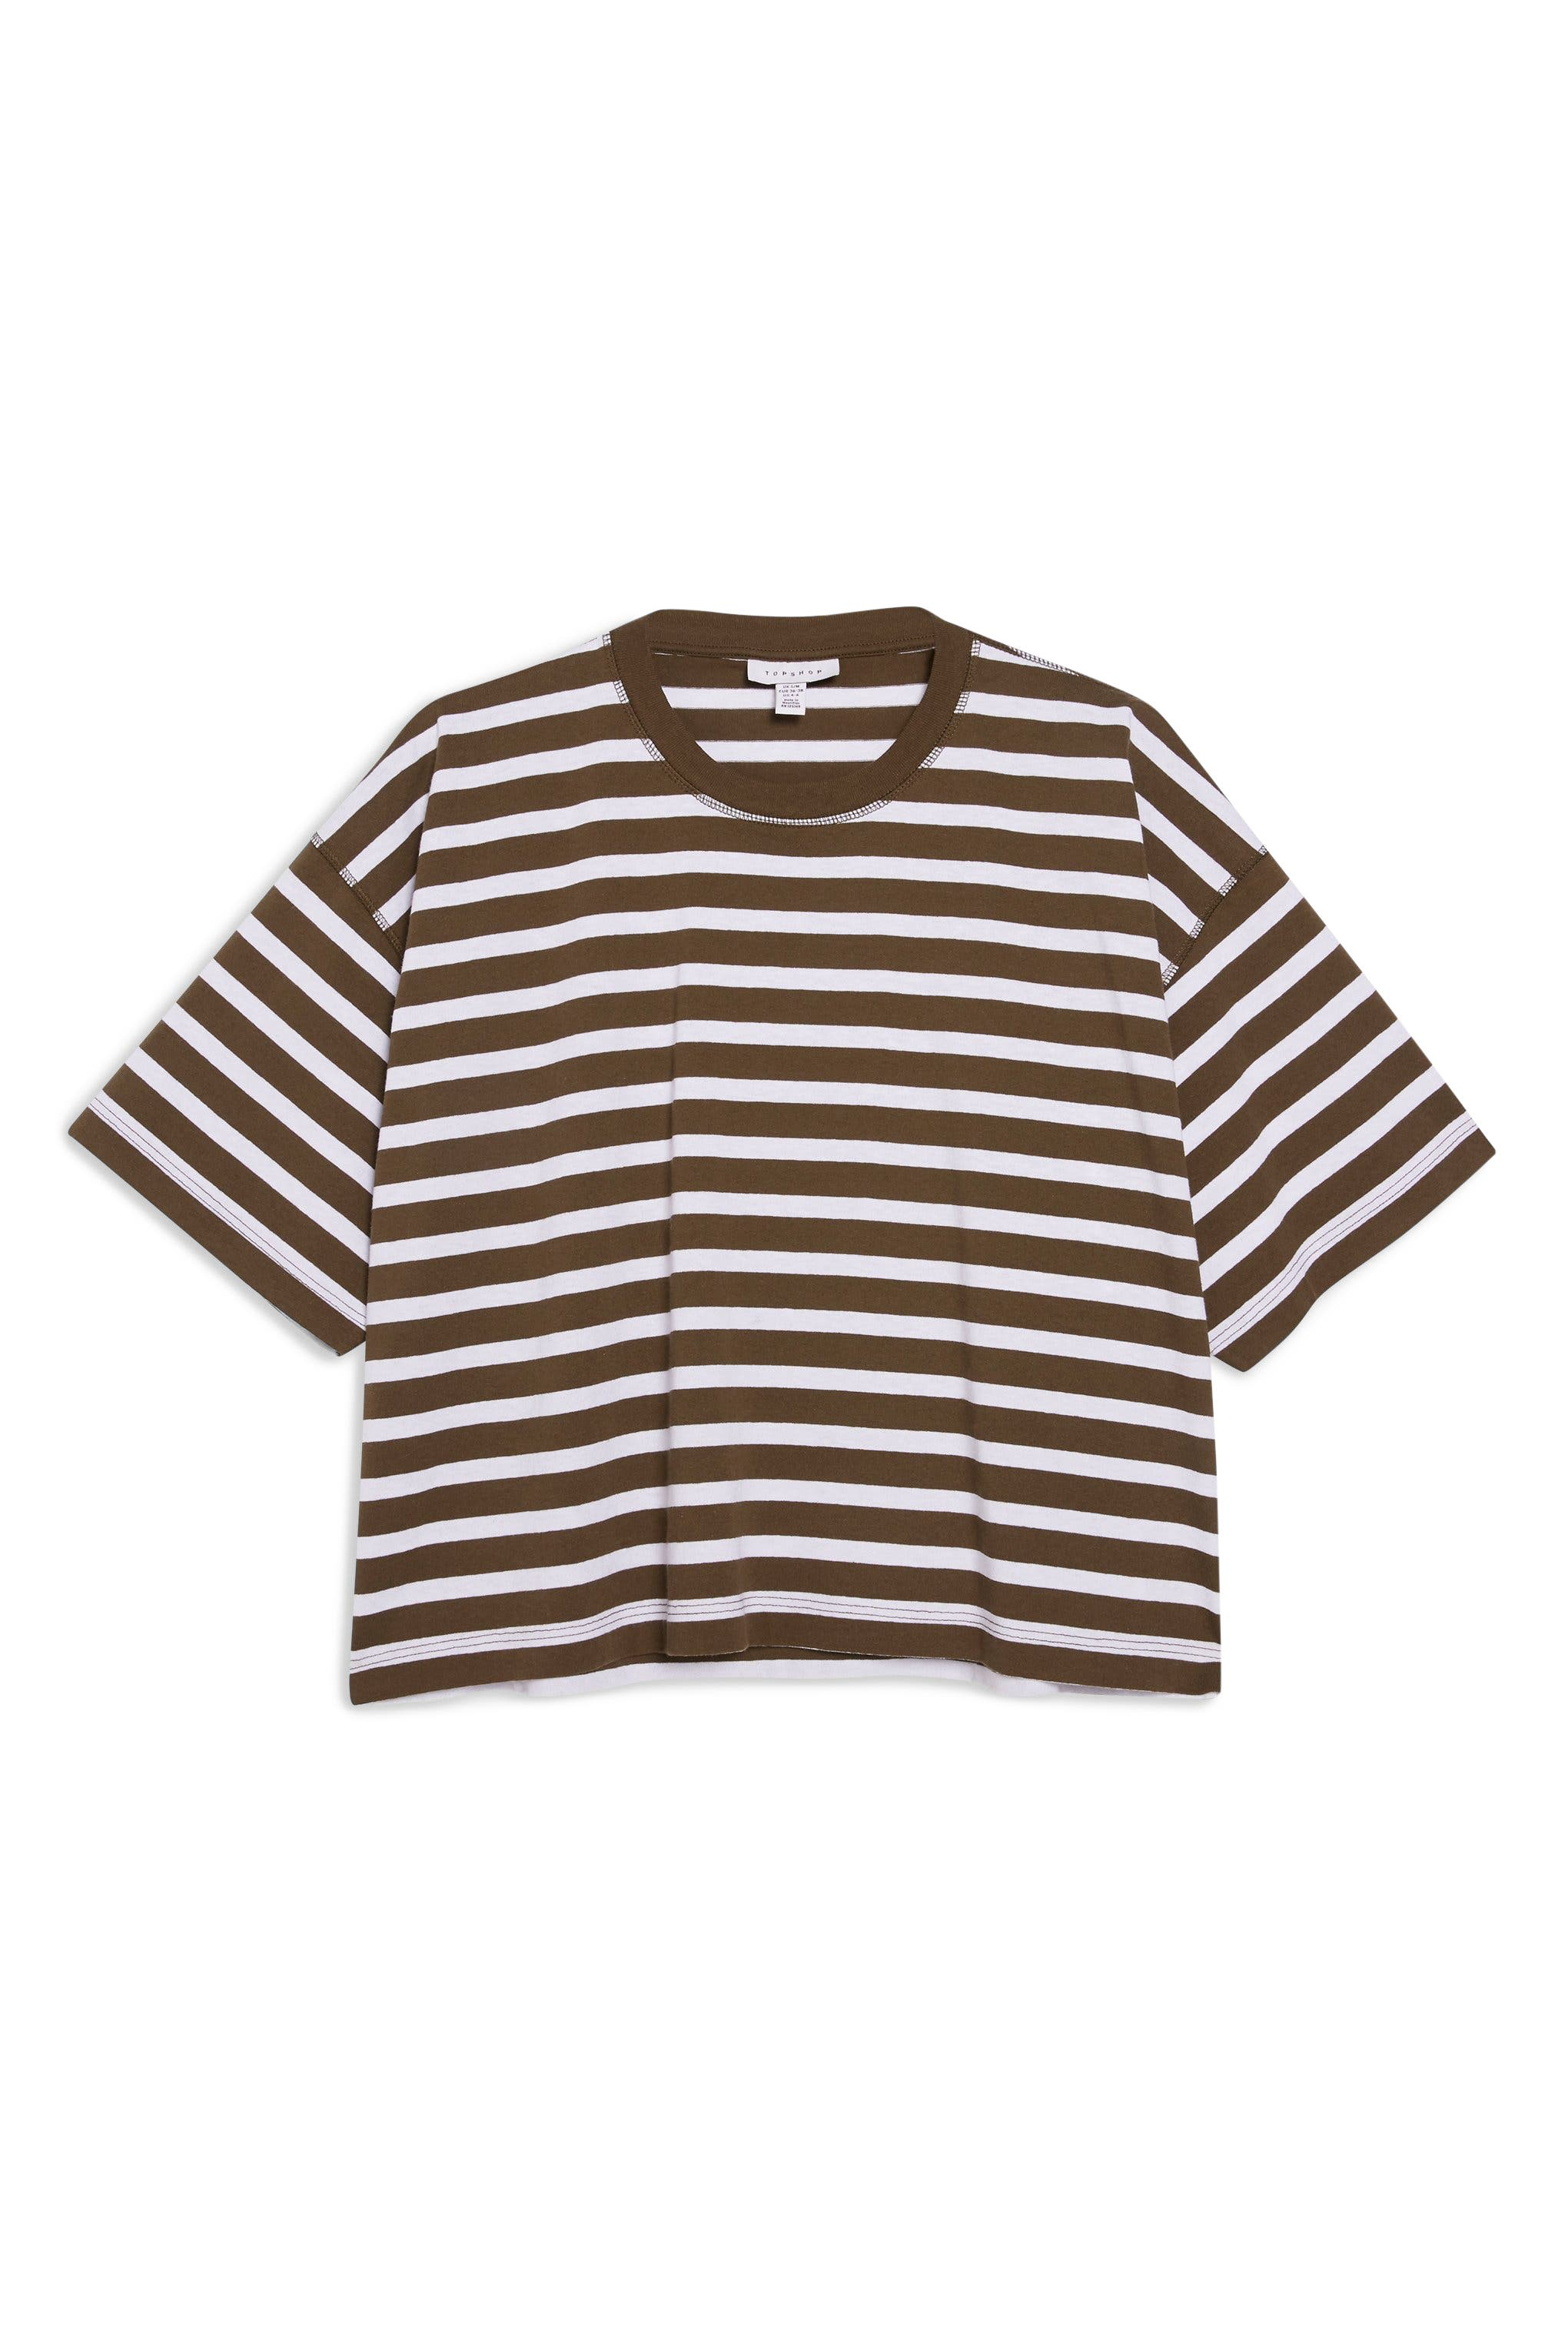 TOPSHOP, Stripe Boxy Tee, Alternate thumbnail 3, color, OLIVE MULTI